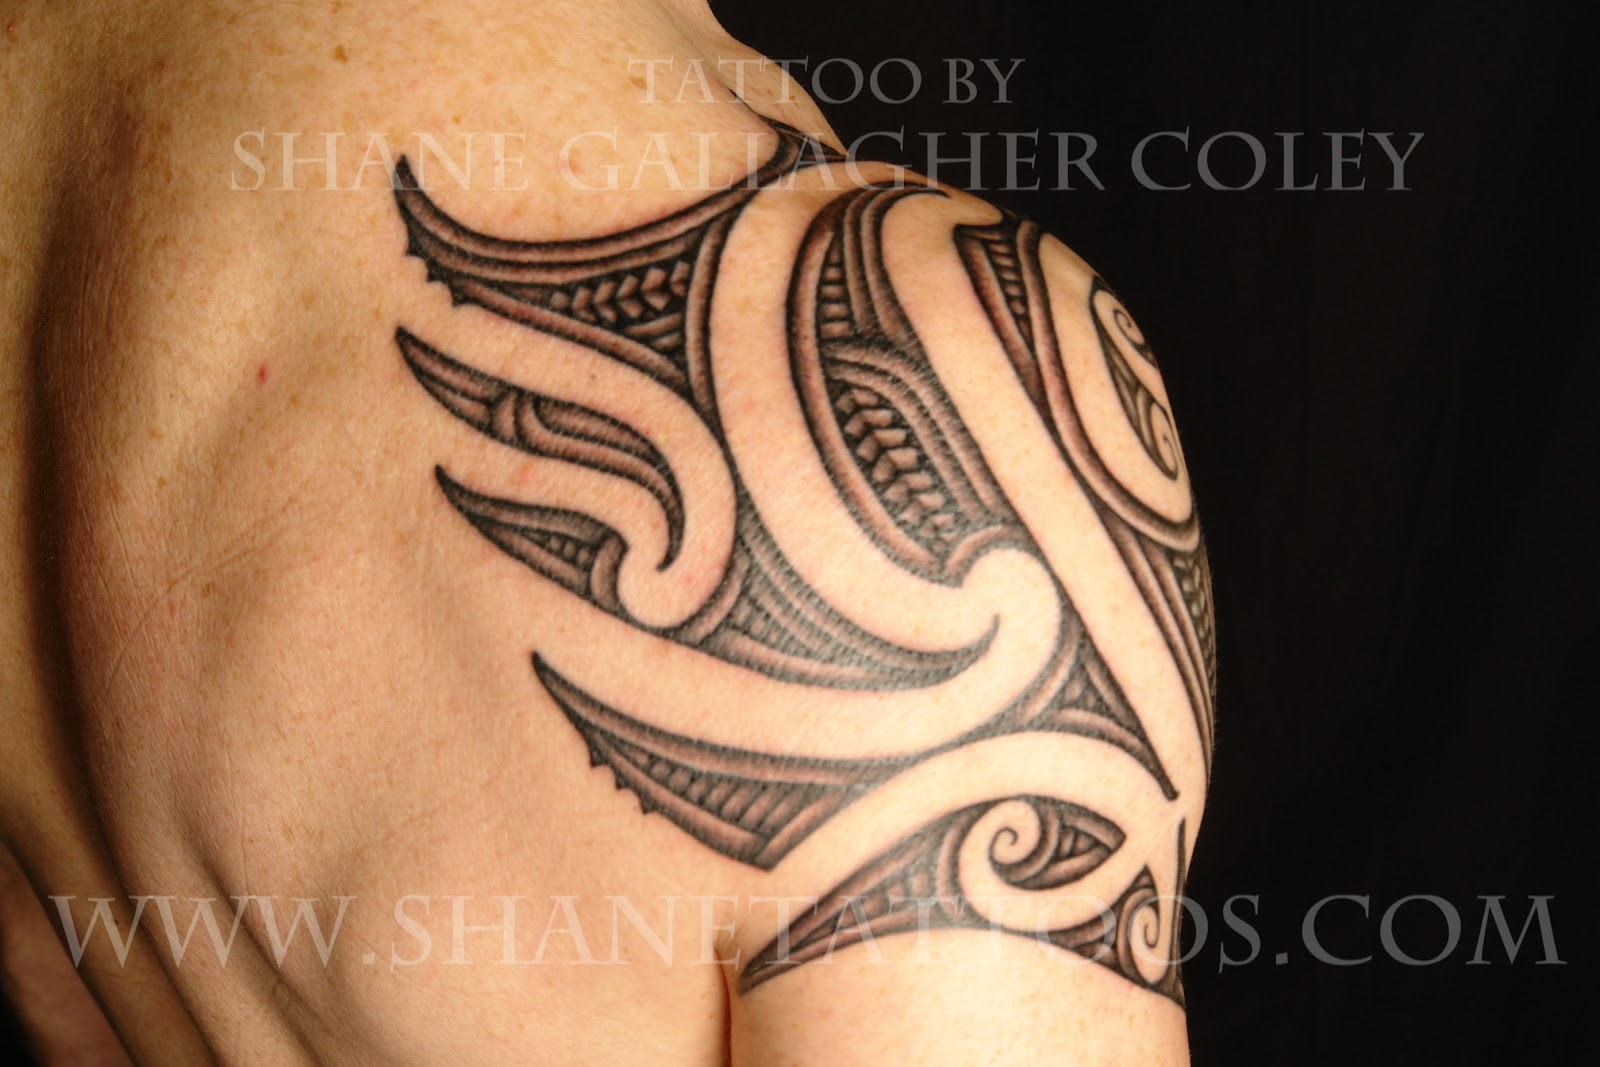 Shoulder-to-shoulder-tattoos-shane-tattoos-maori-shoulder